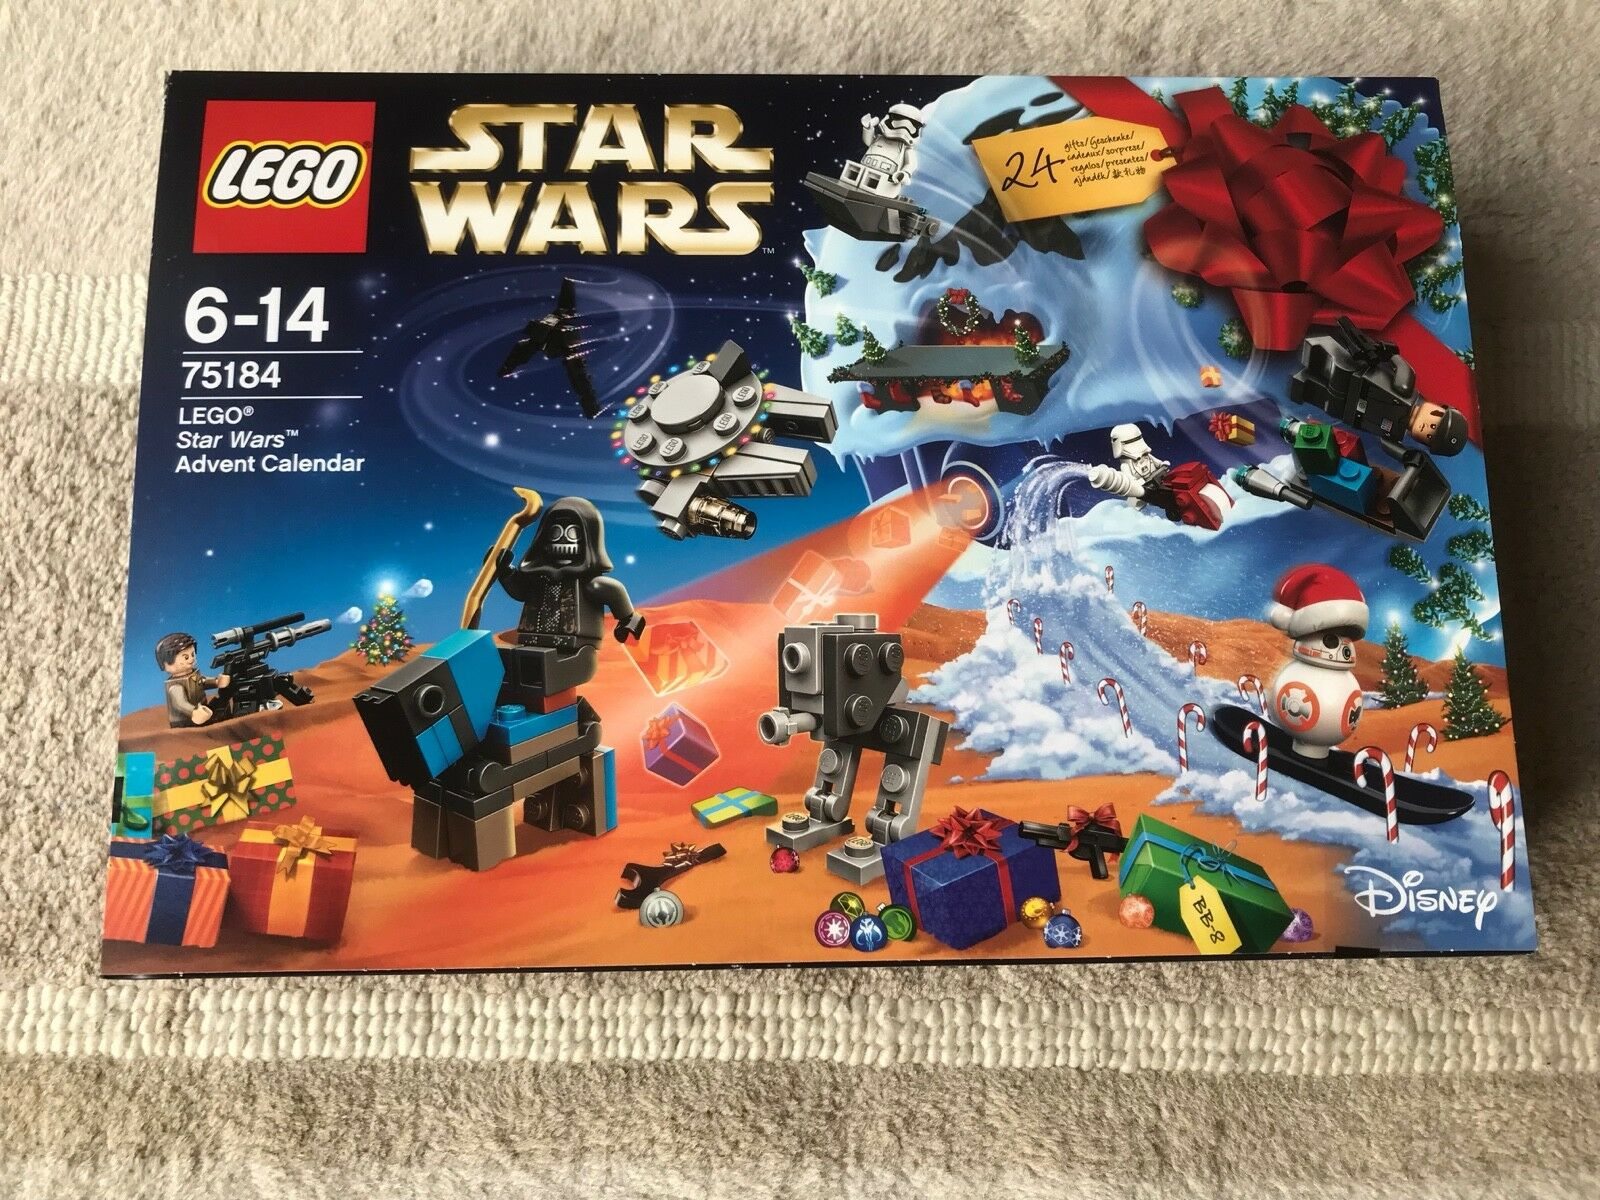 LEGO Star Wars 75184 ADVENT CALENDAR 2017 - BRAND NEW SEALED - RARE